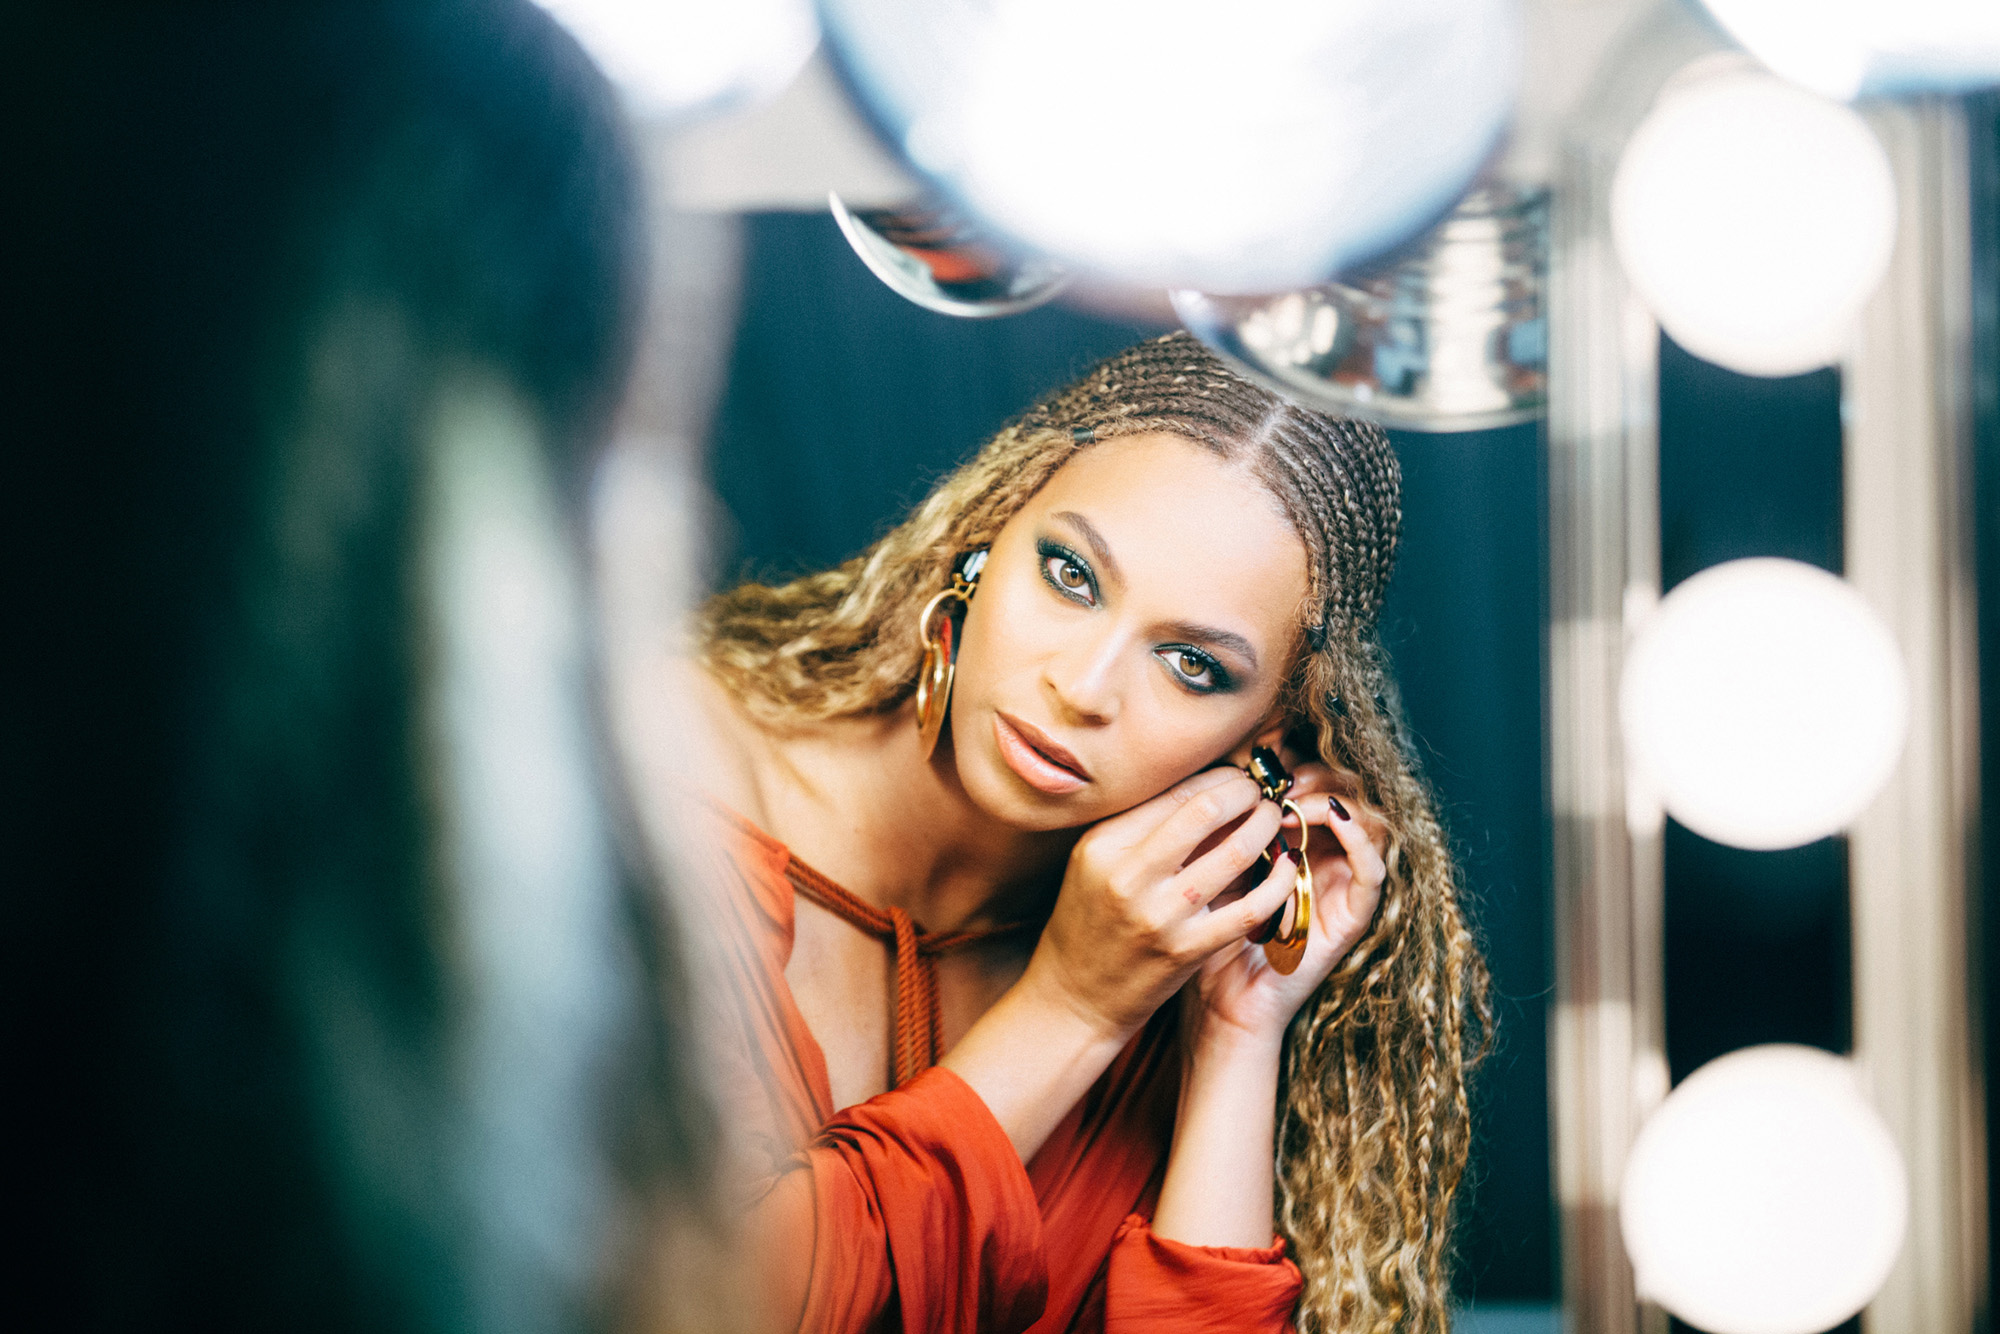 Backstage at Beyoncé's Formation World Tour in Cardiff, Wales, on June 30, 2016.